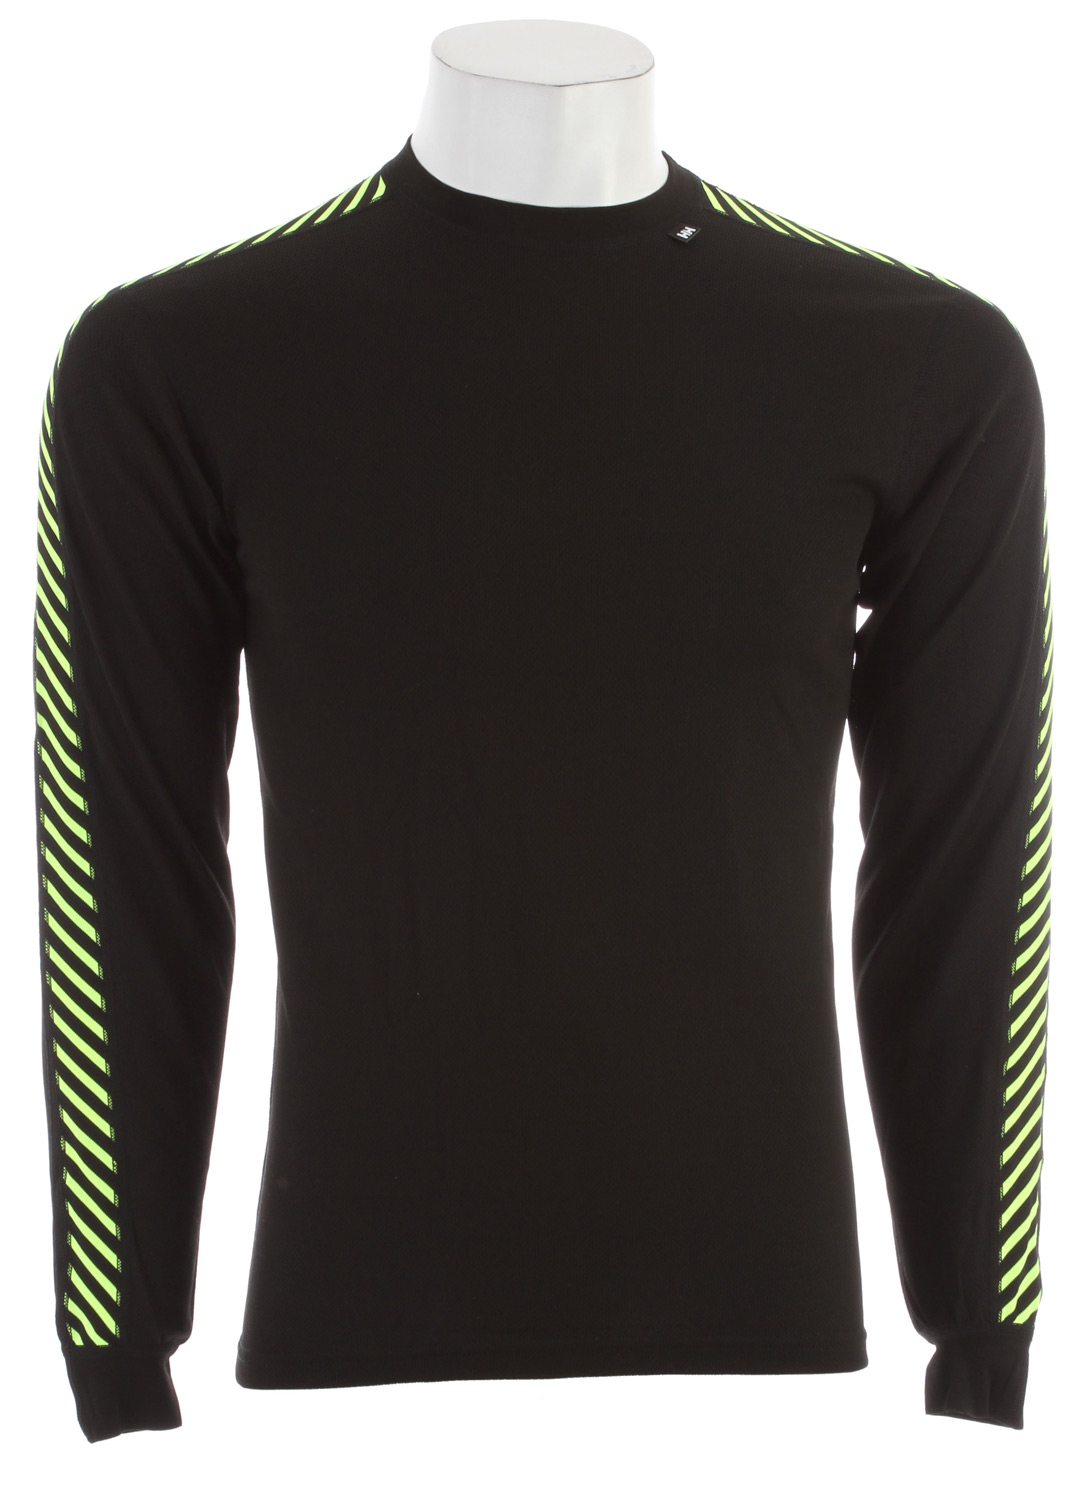 The original technical baselayer. The Lifa white stripes are recognized by professionals, core athletes and enthusiasts around the world. Designed for all sports all year.Key Features of the Helly Hansen Dry Stripe Crew Baselayer Top: Lifa Stay Dry Technology Flat lock stitching Low bulk cuffs Fabric weight: 125g/m2 100% POLYPROPYLENE - $40.00